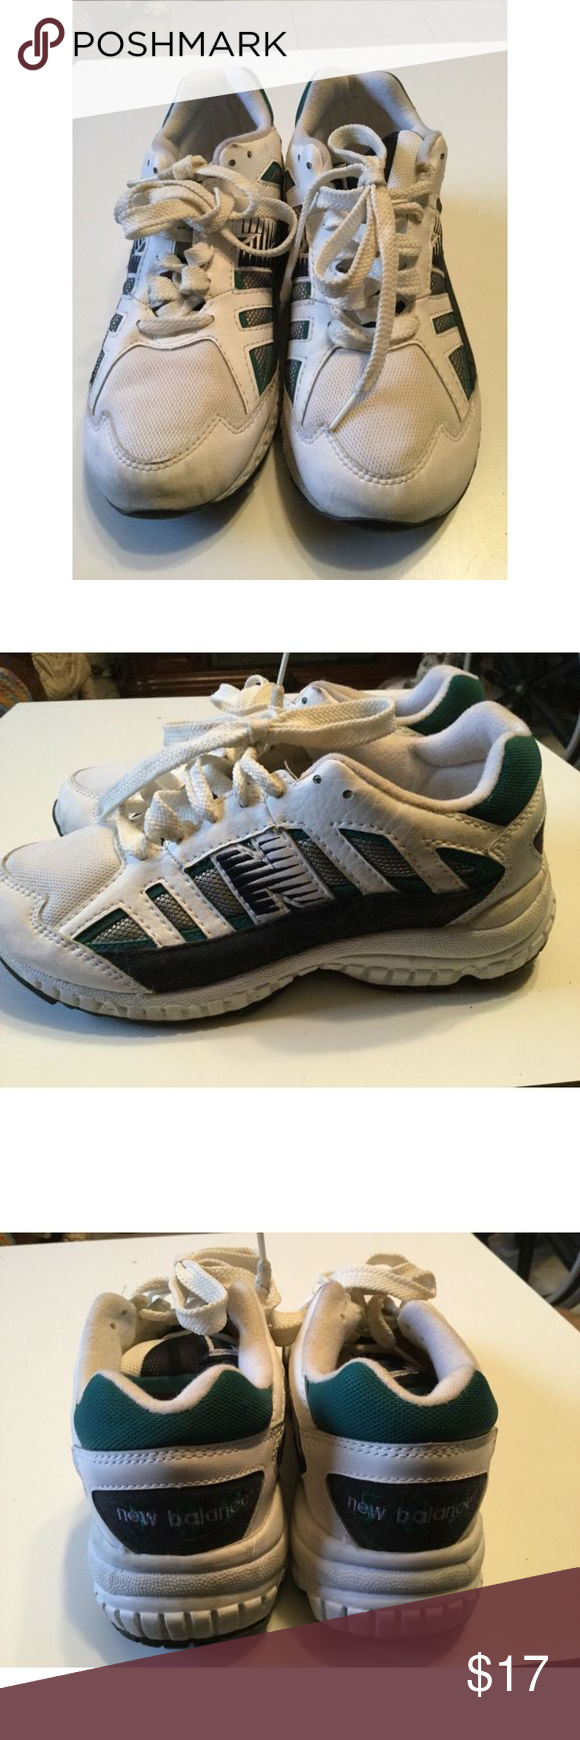 Balance 502 running sneakers size